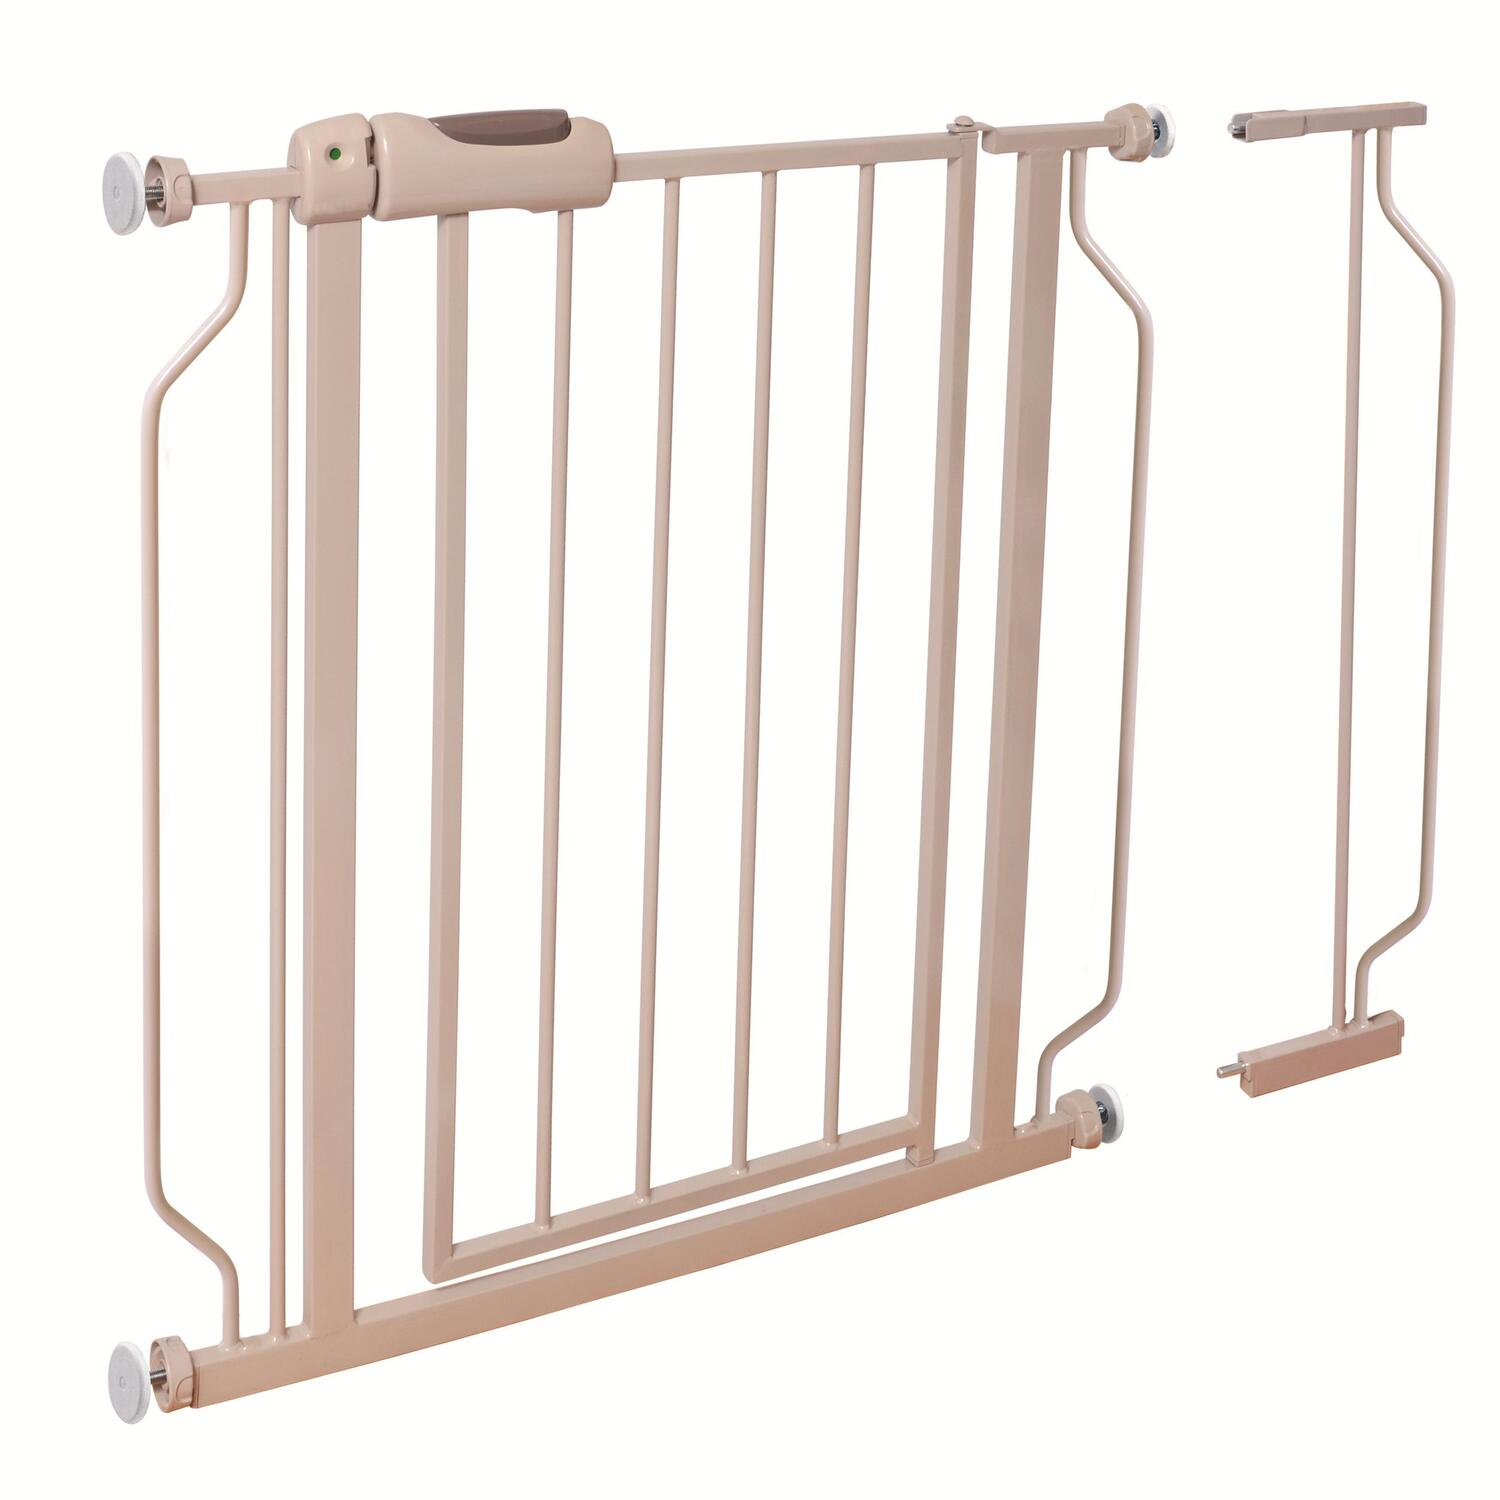 Evenflo Easy Walk-Thru Gate Metal by OJ Commerce 4483100 - $39.60